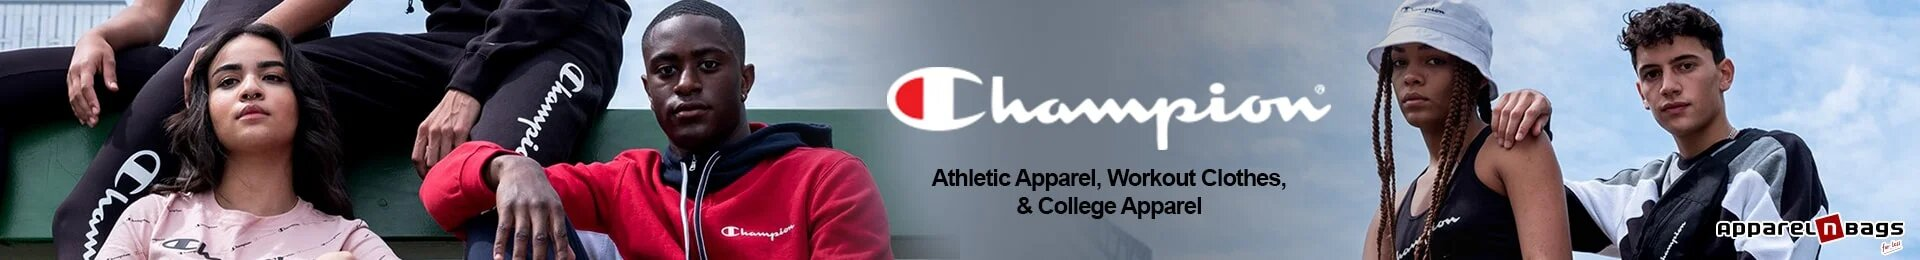 Champion: Athletic Apparel, Workout Clothes, & College Apparel